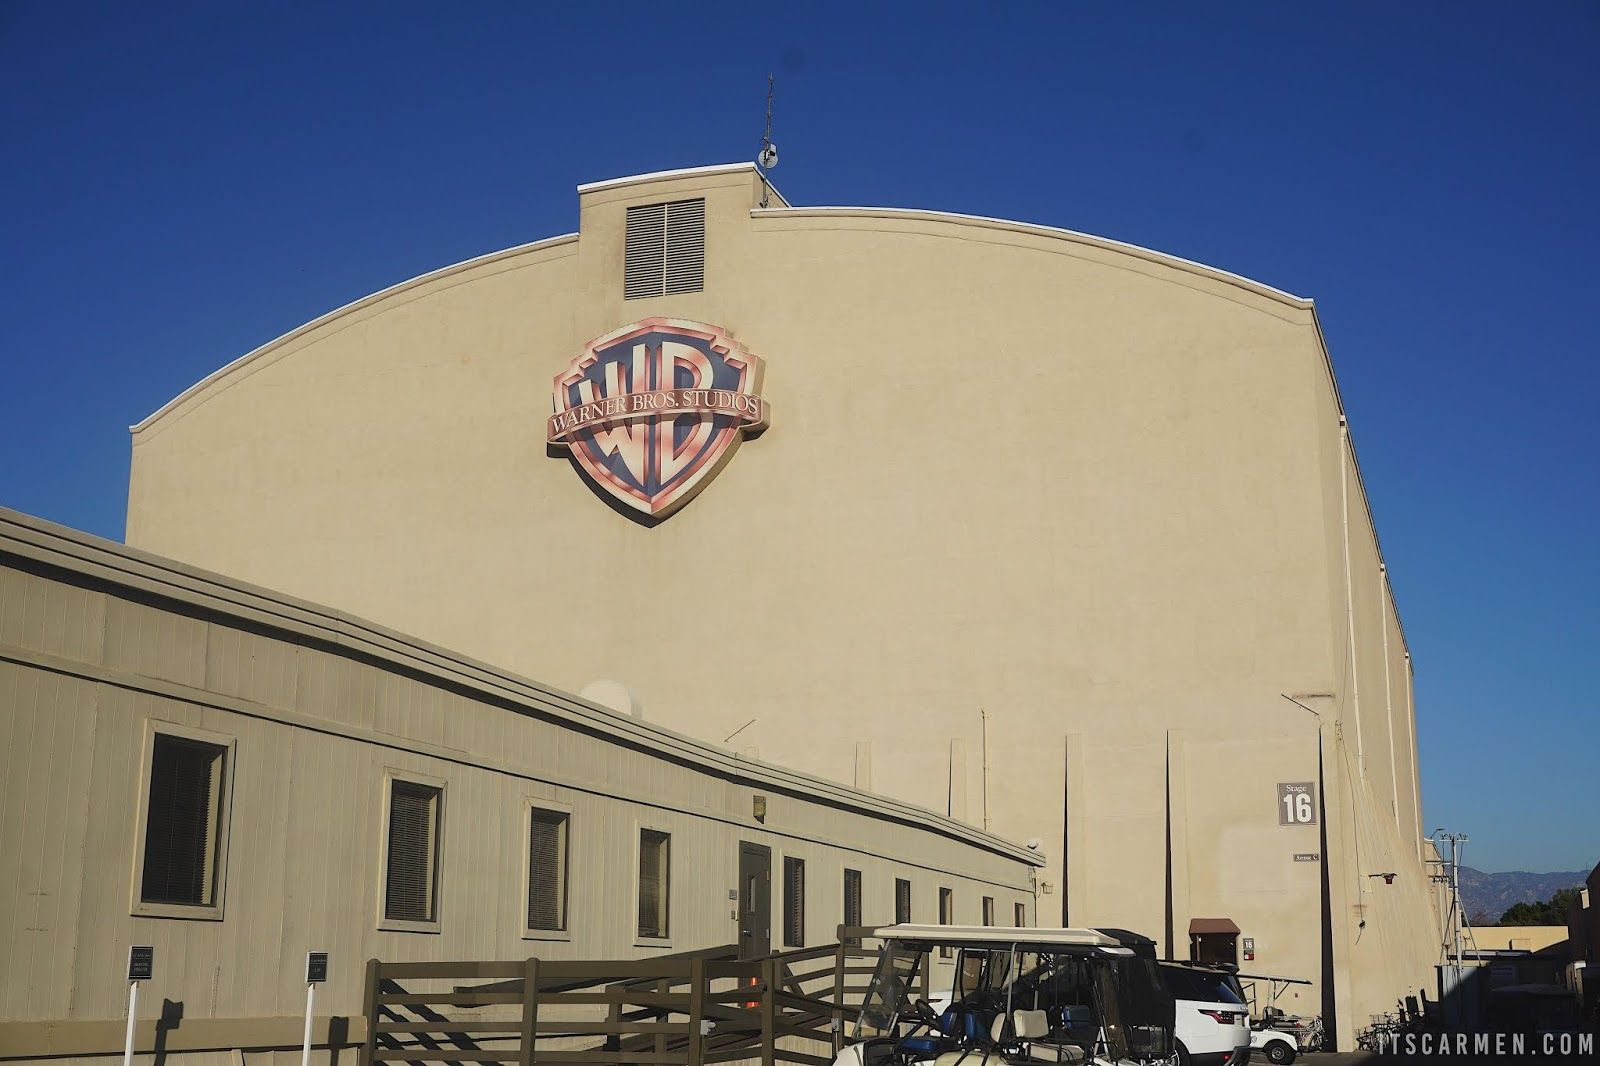 Warner Bros Studio Tour in Burbank, California